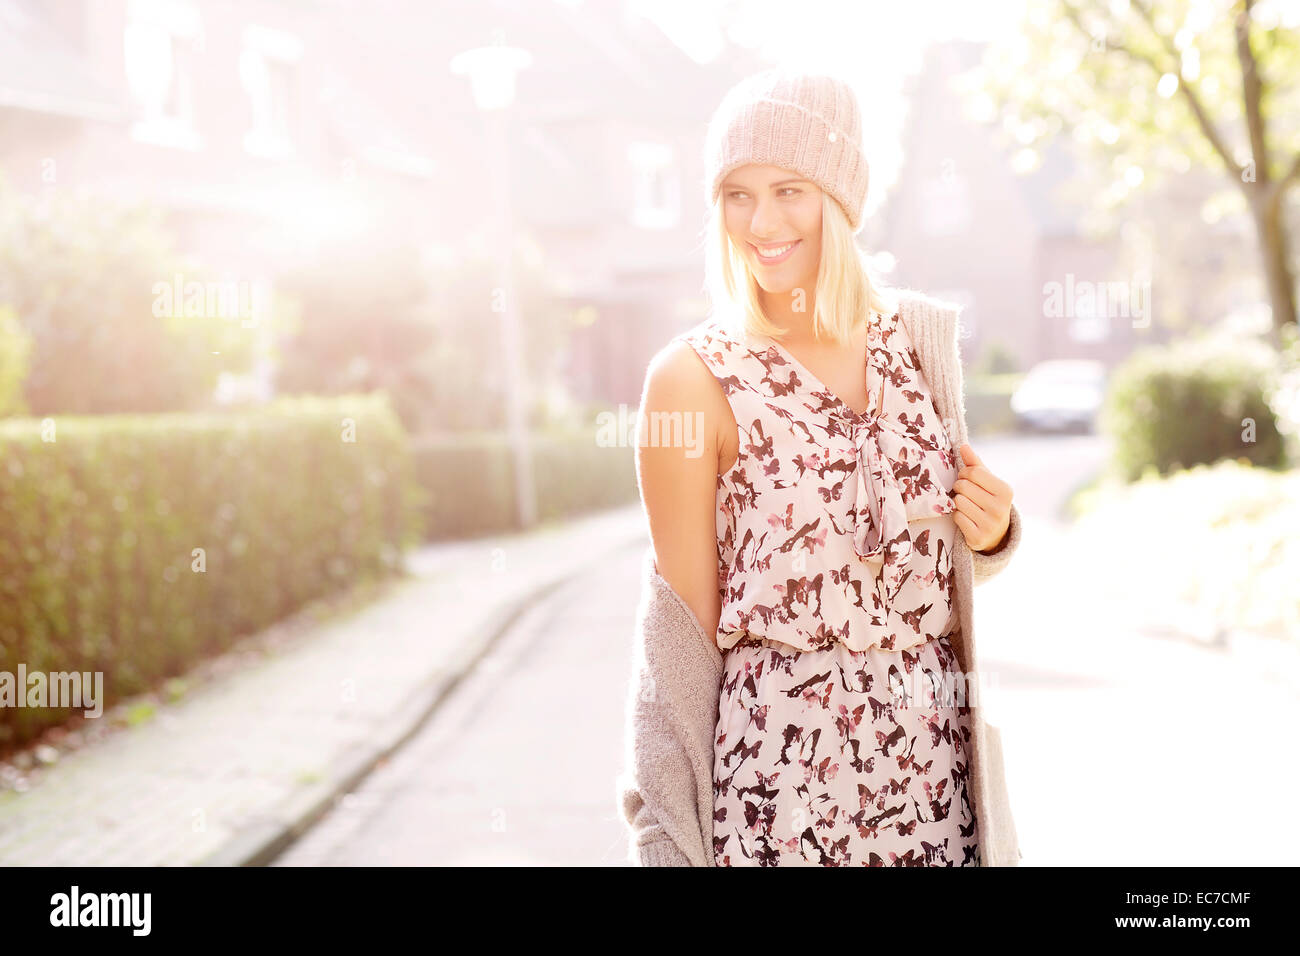 Portrait of smiling blond woman wearing patterned dress, cardigan and wool cap - Stock Image